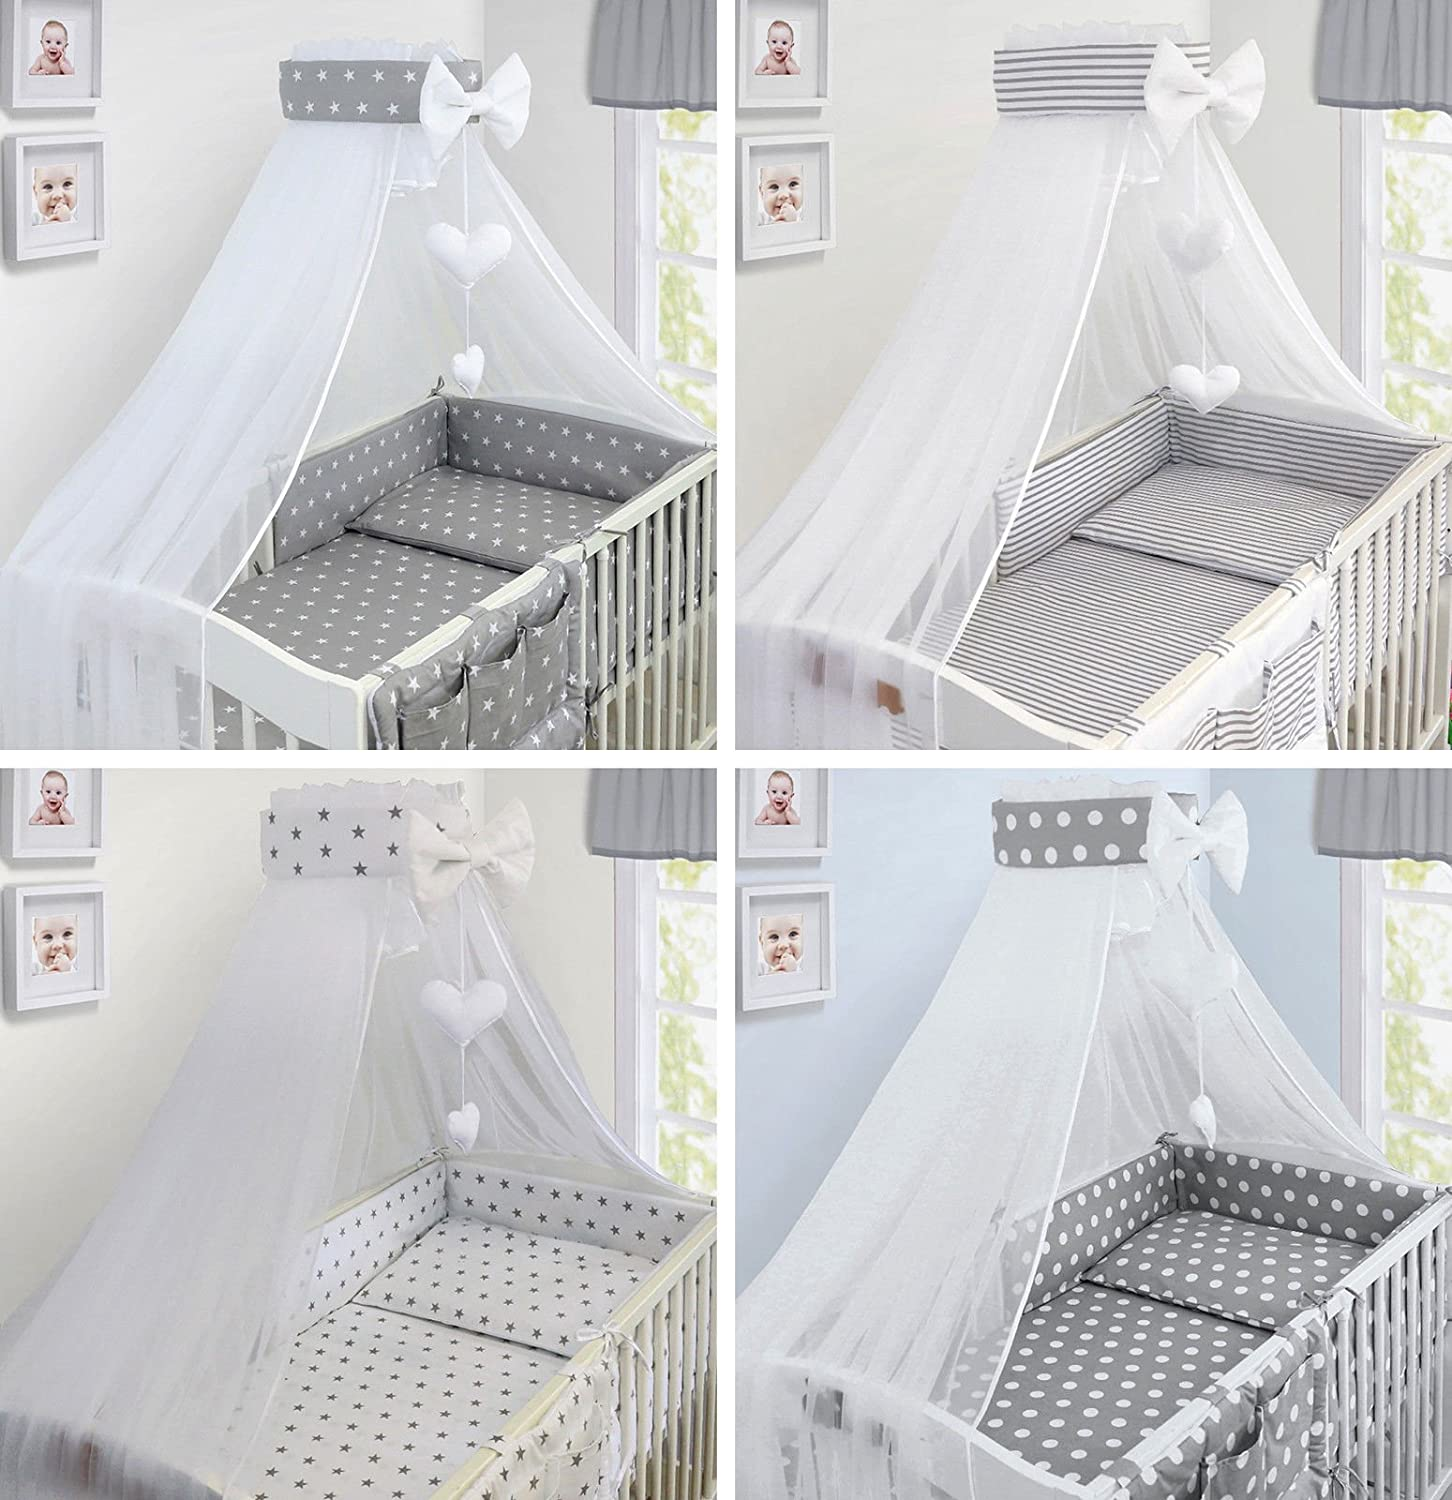 LUXURY 10Pcs BABY BEDDING SET COT BED PILLOW DUVET COVER BUMPER CANOPY to Fit Cot Bed Size 140x70cm 100% COTTON (Grey Stripes) TheLittles24